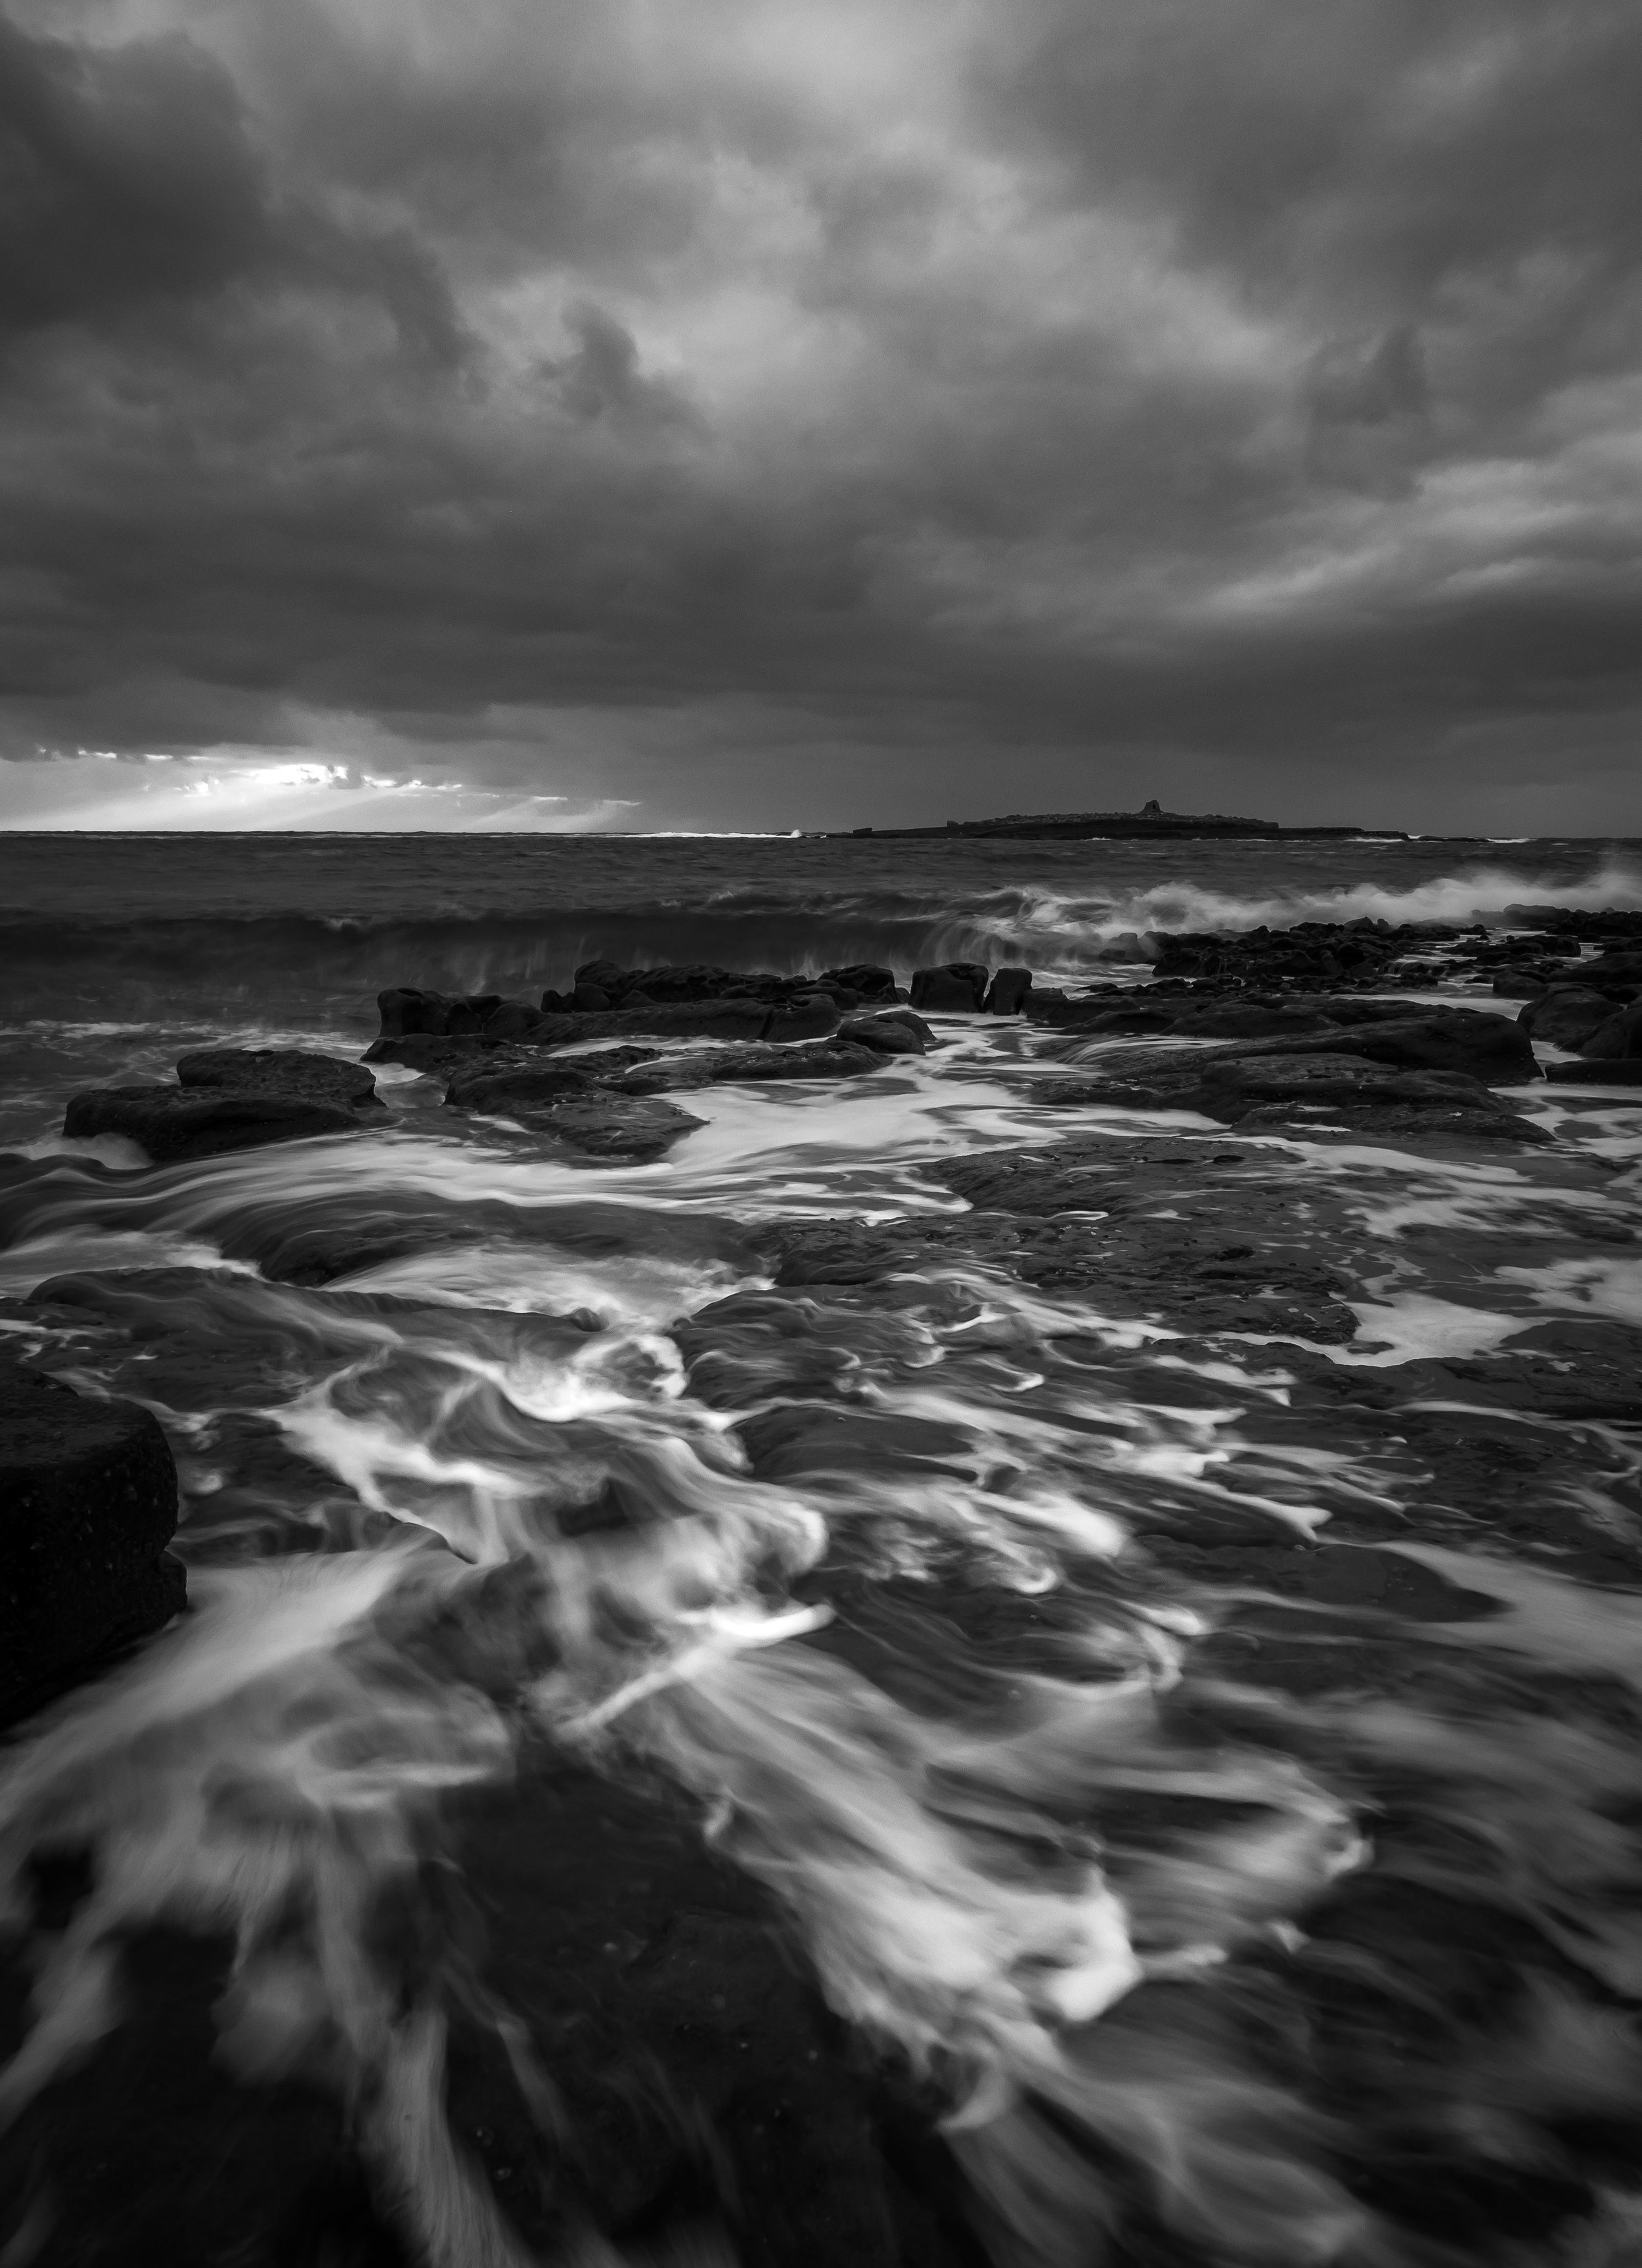 This was shot at 1/1.3 second shutter speed handheld on the Em1 Mk2